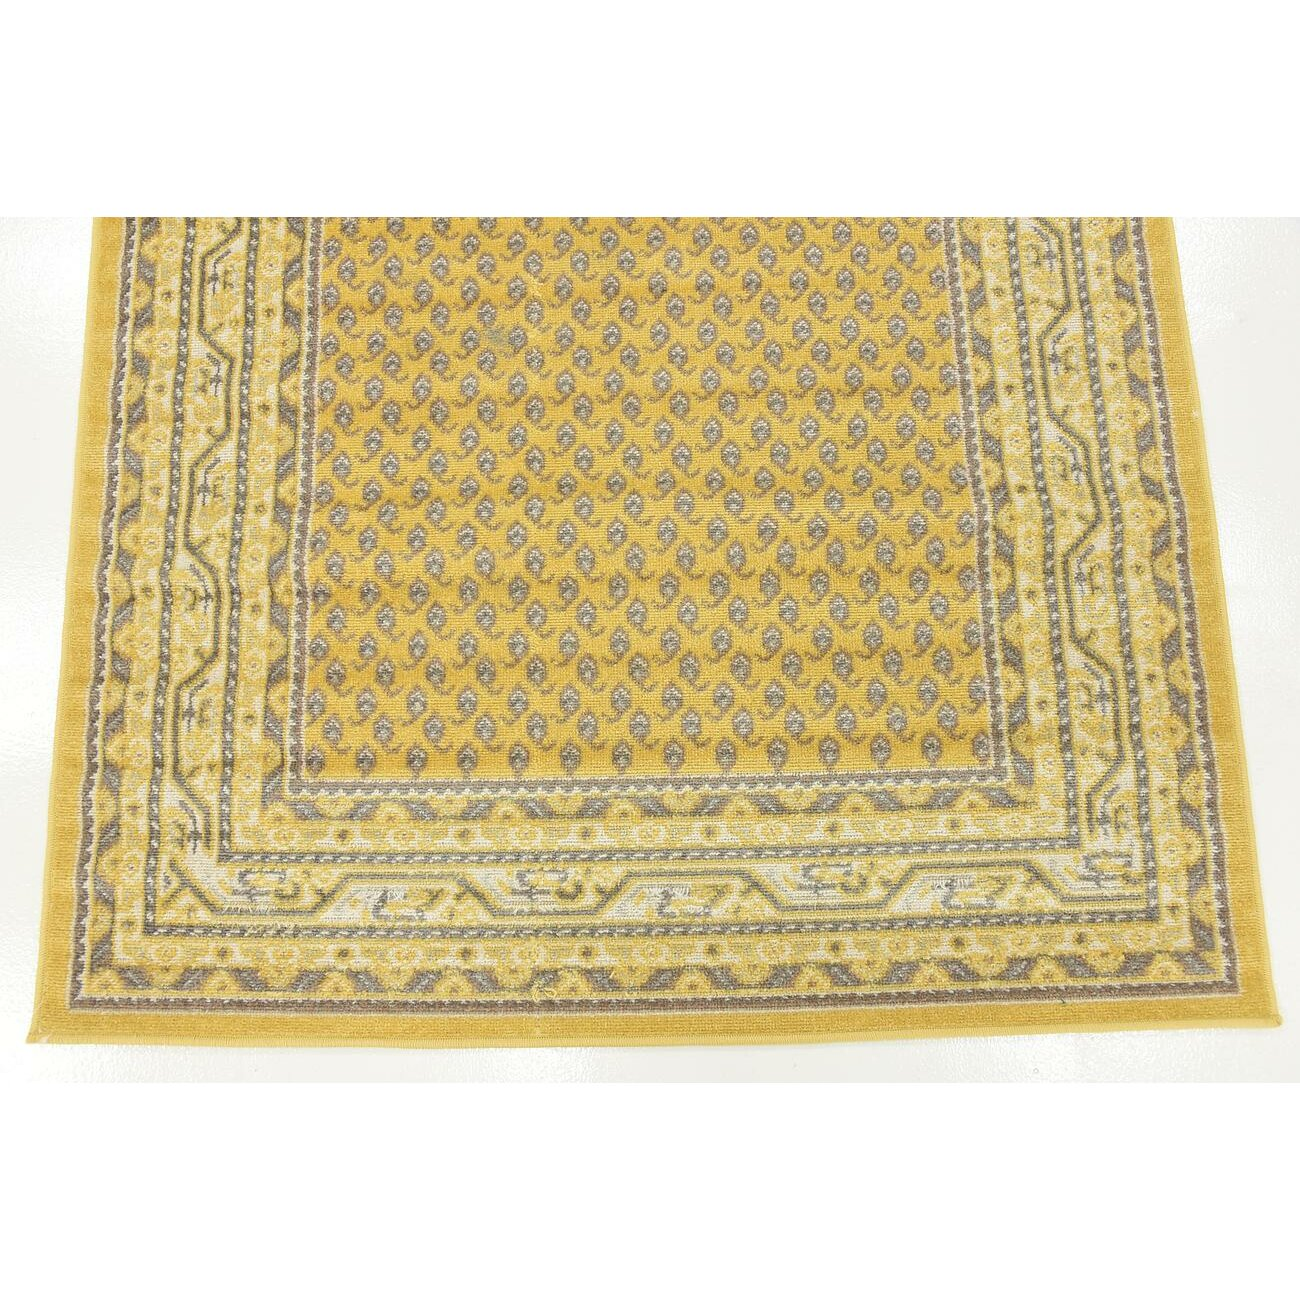 Three Posts Gillam Yellow Area Rug Amp Reviews Wayfair